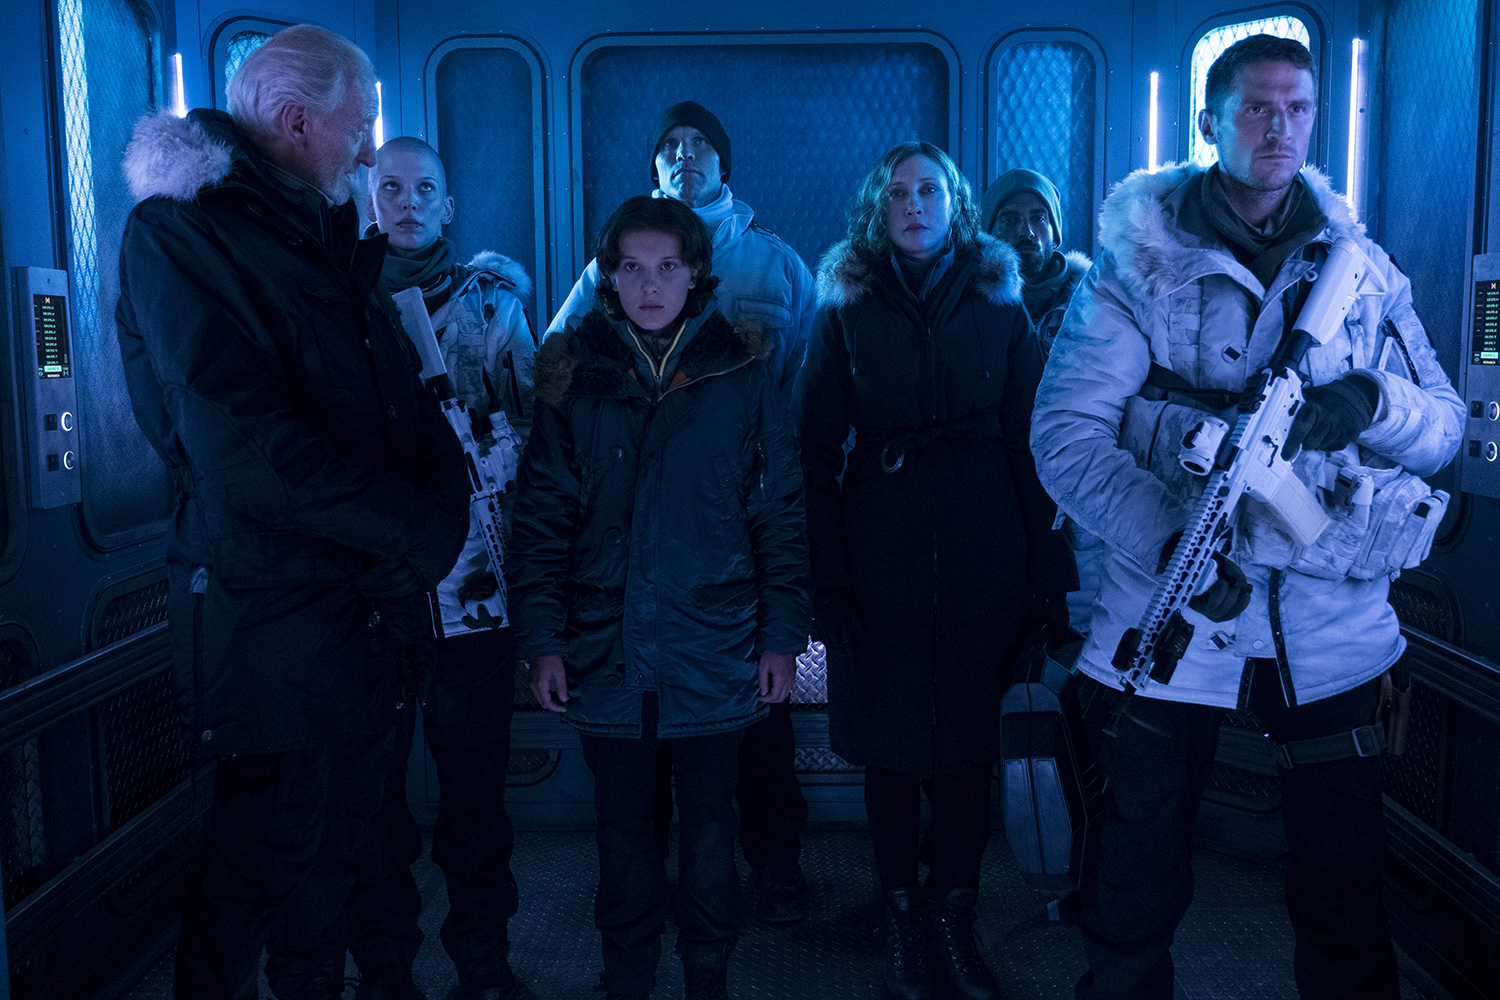 rev-1-GKM-06366r_High_Res_JPEG